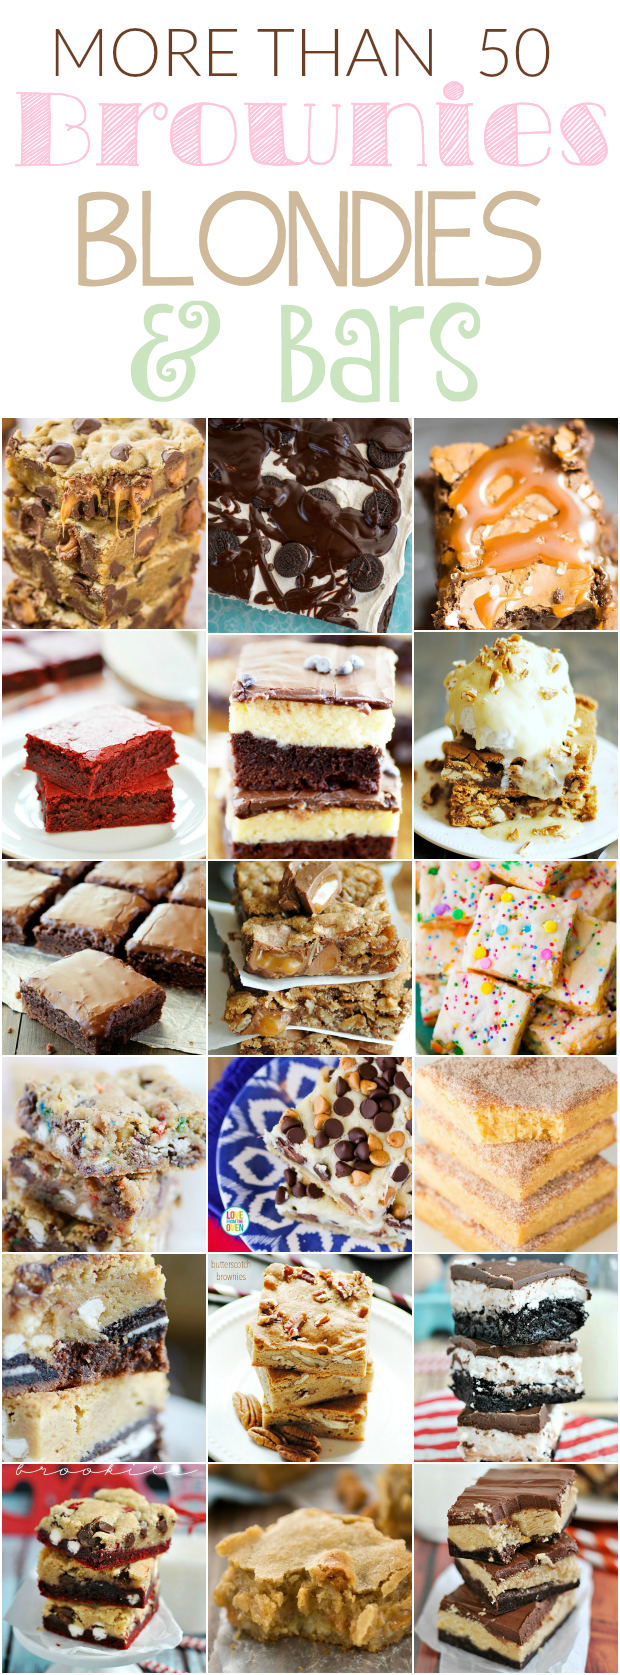 50+ Brownies and Bars Recipes